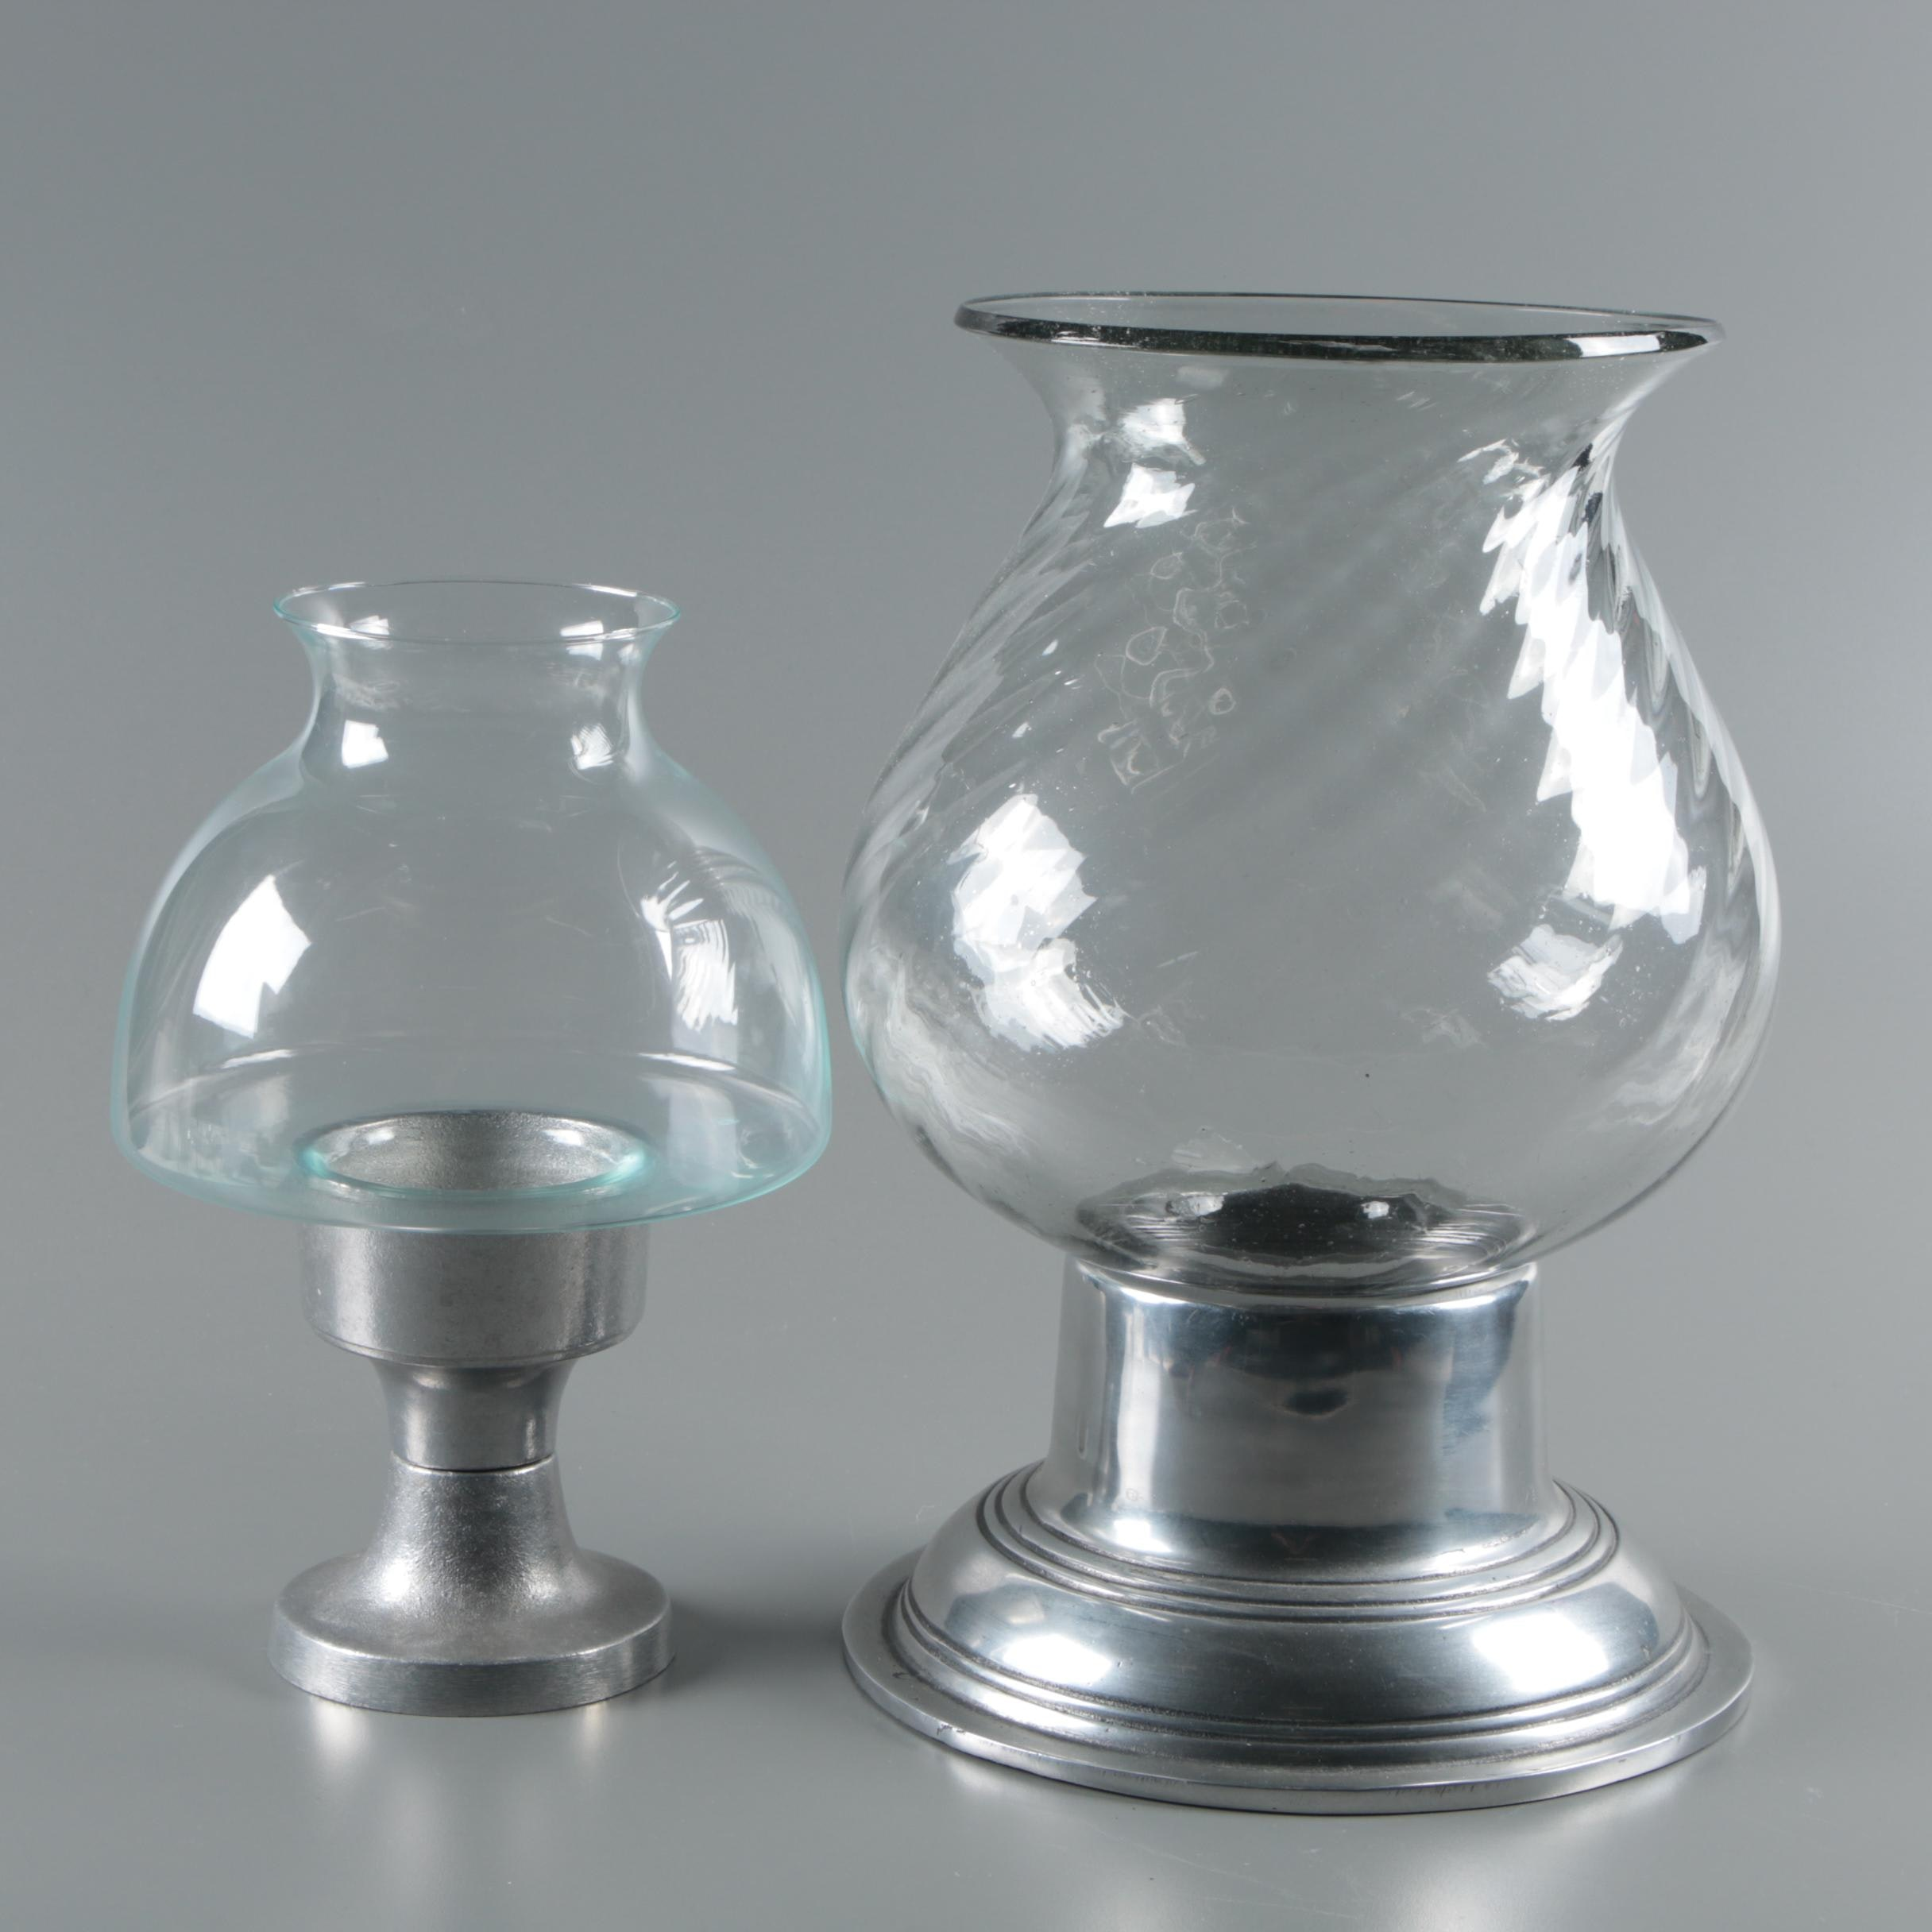 Hurricane Glass Candle Lights with Metal Bases